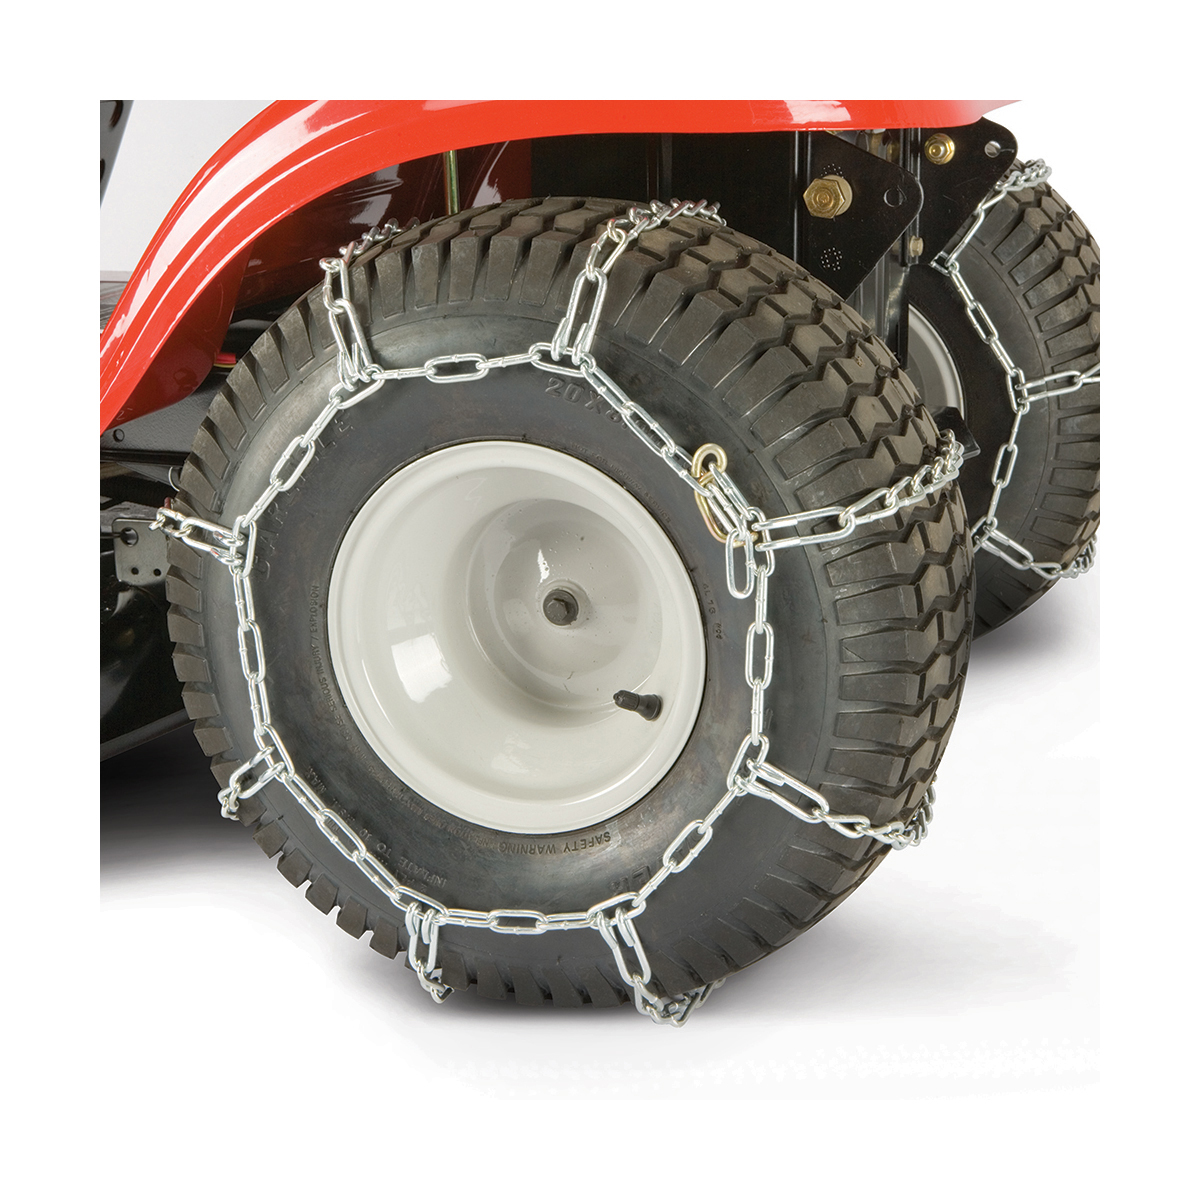 Tire Chains (23 x 9.5) 490-241-0025